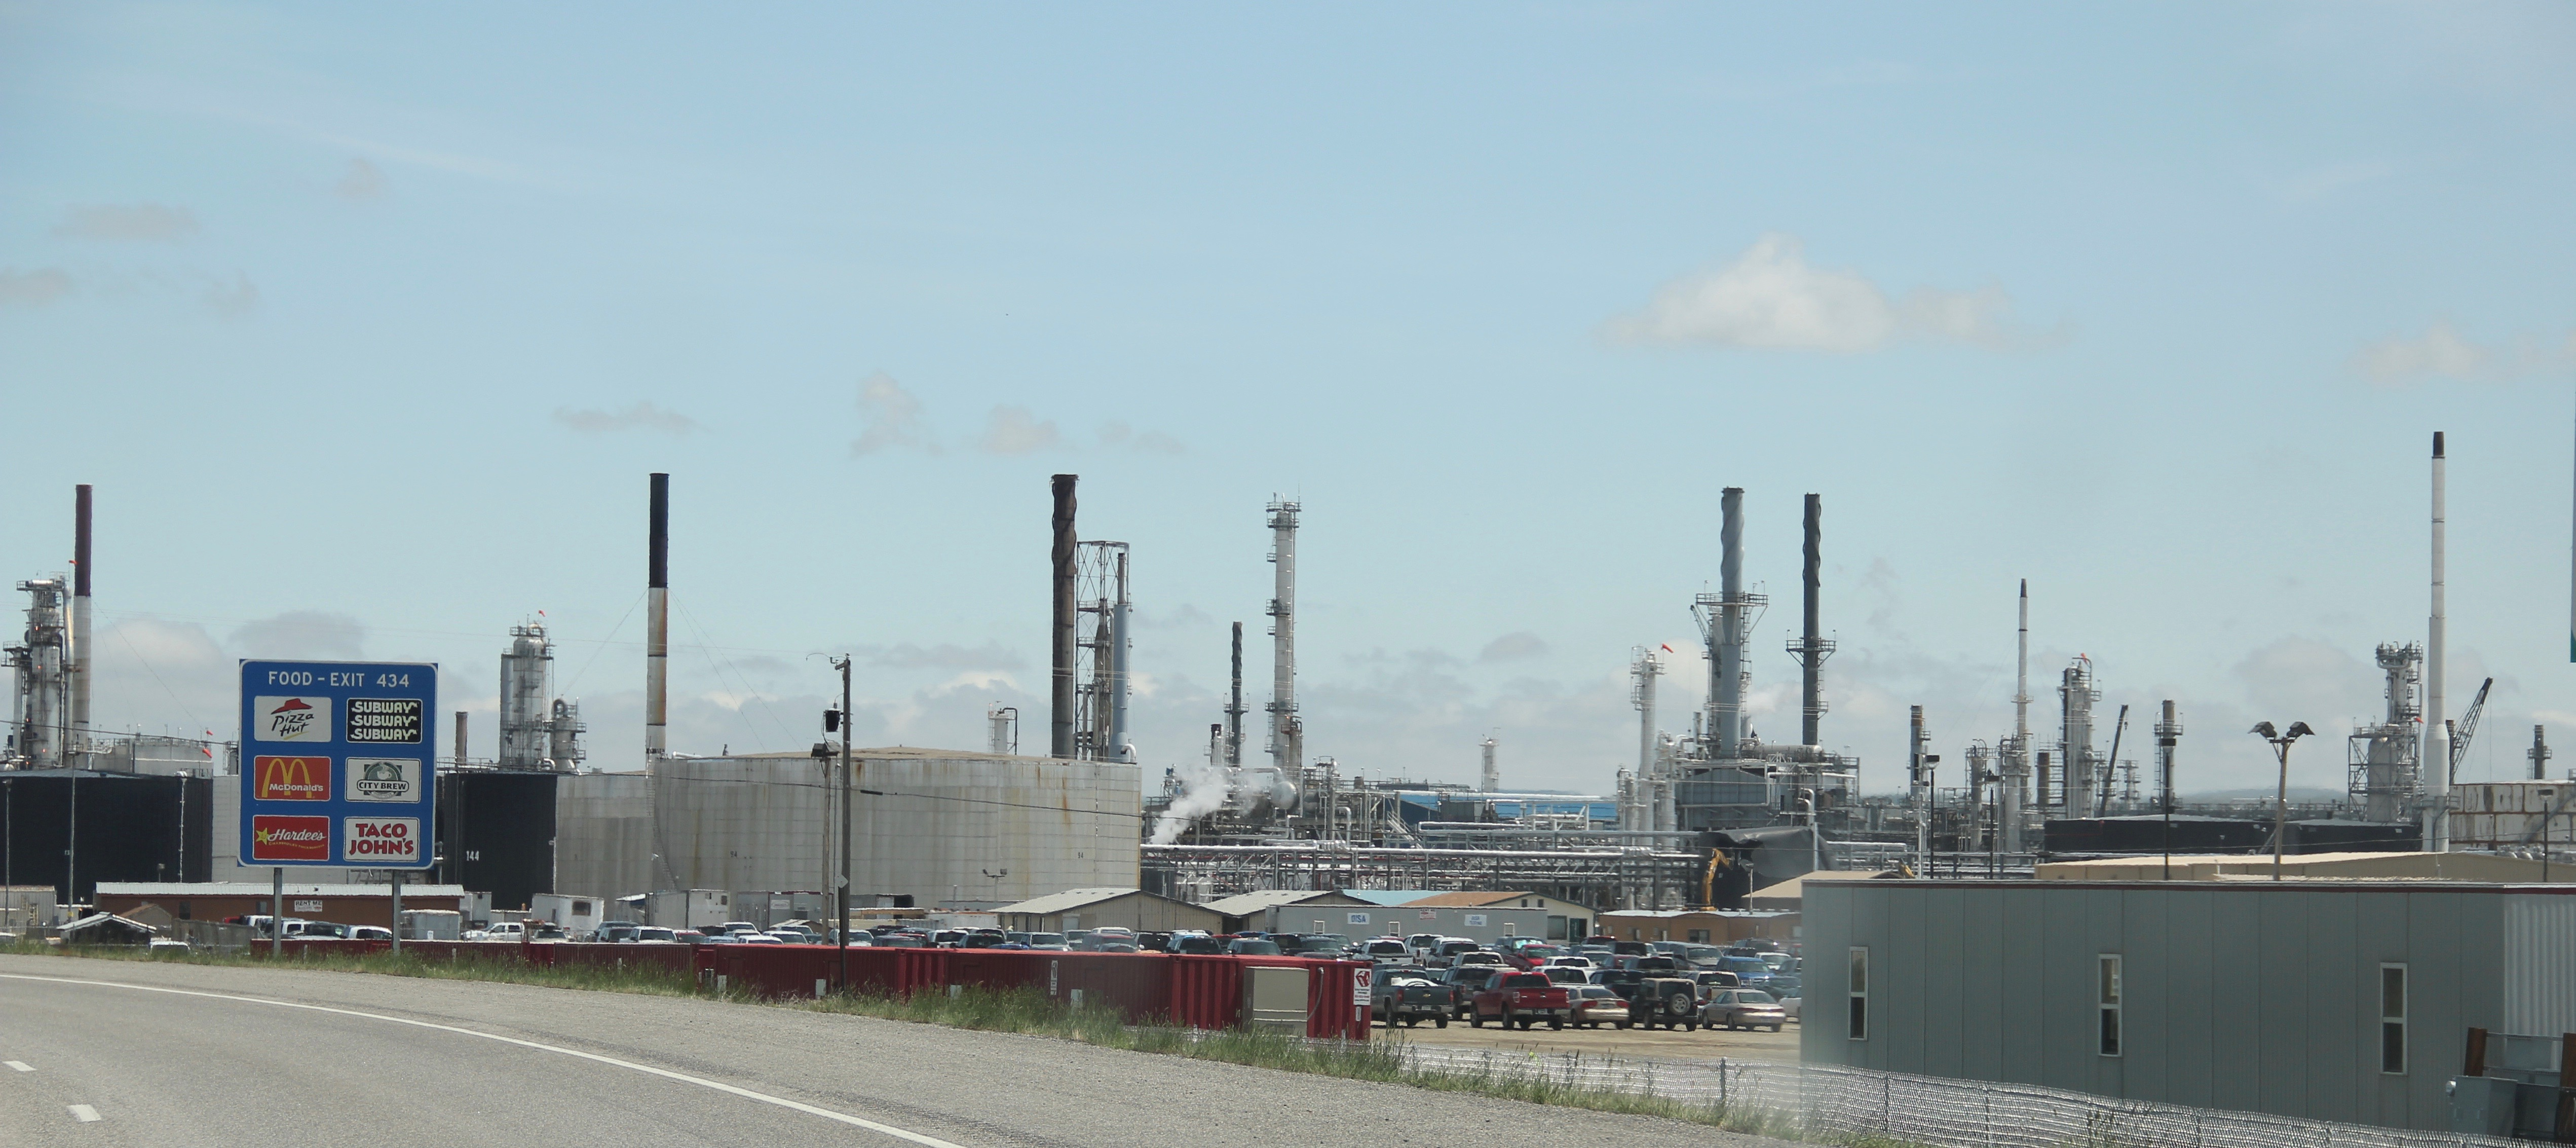 Yellowstone Co Laurel Refinery 2